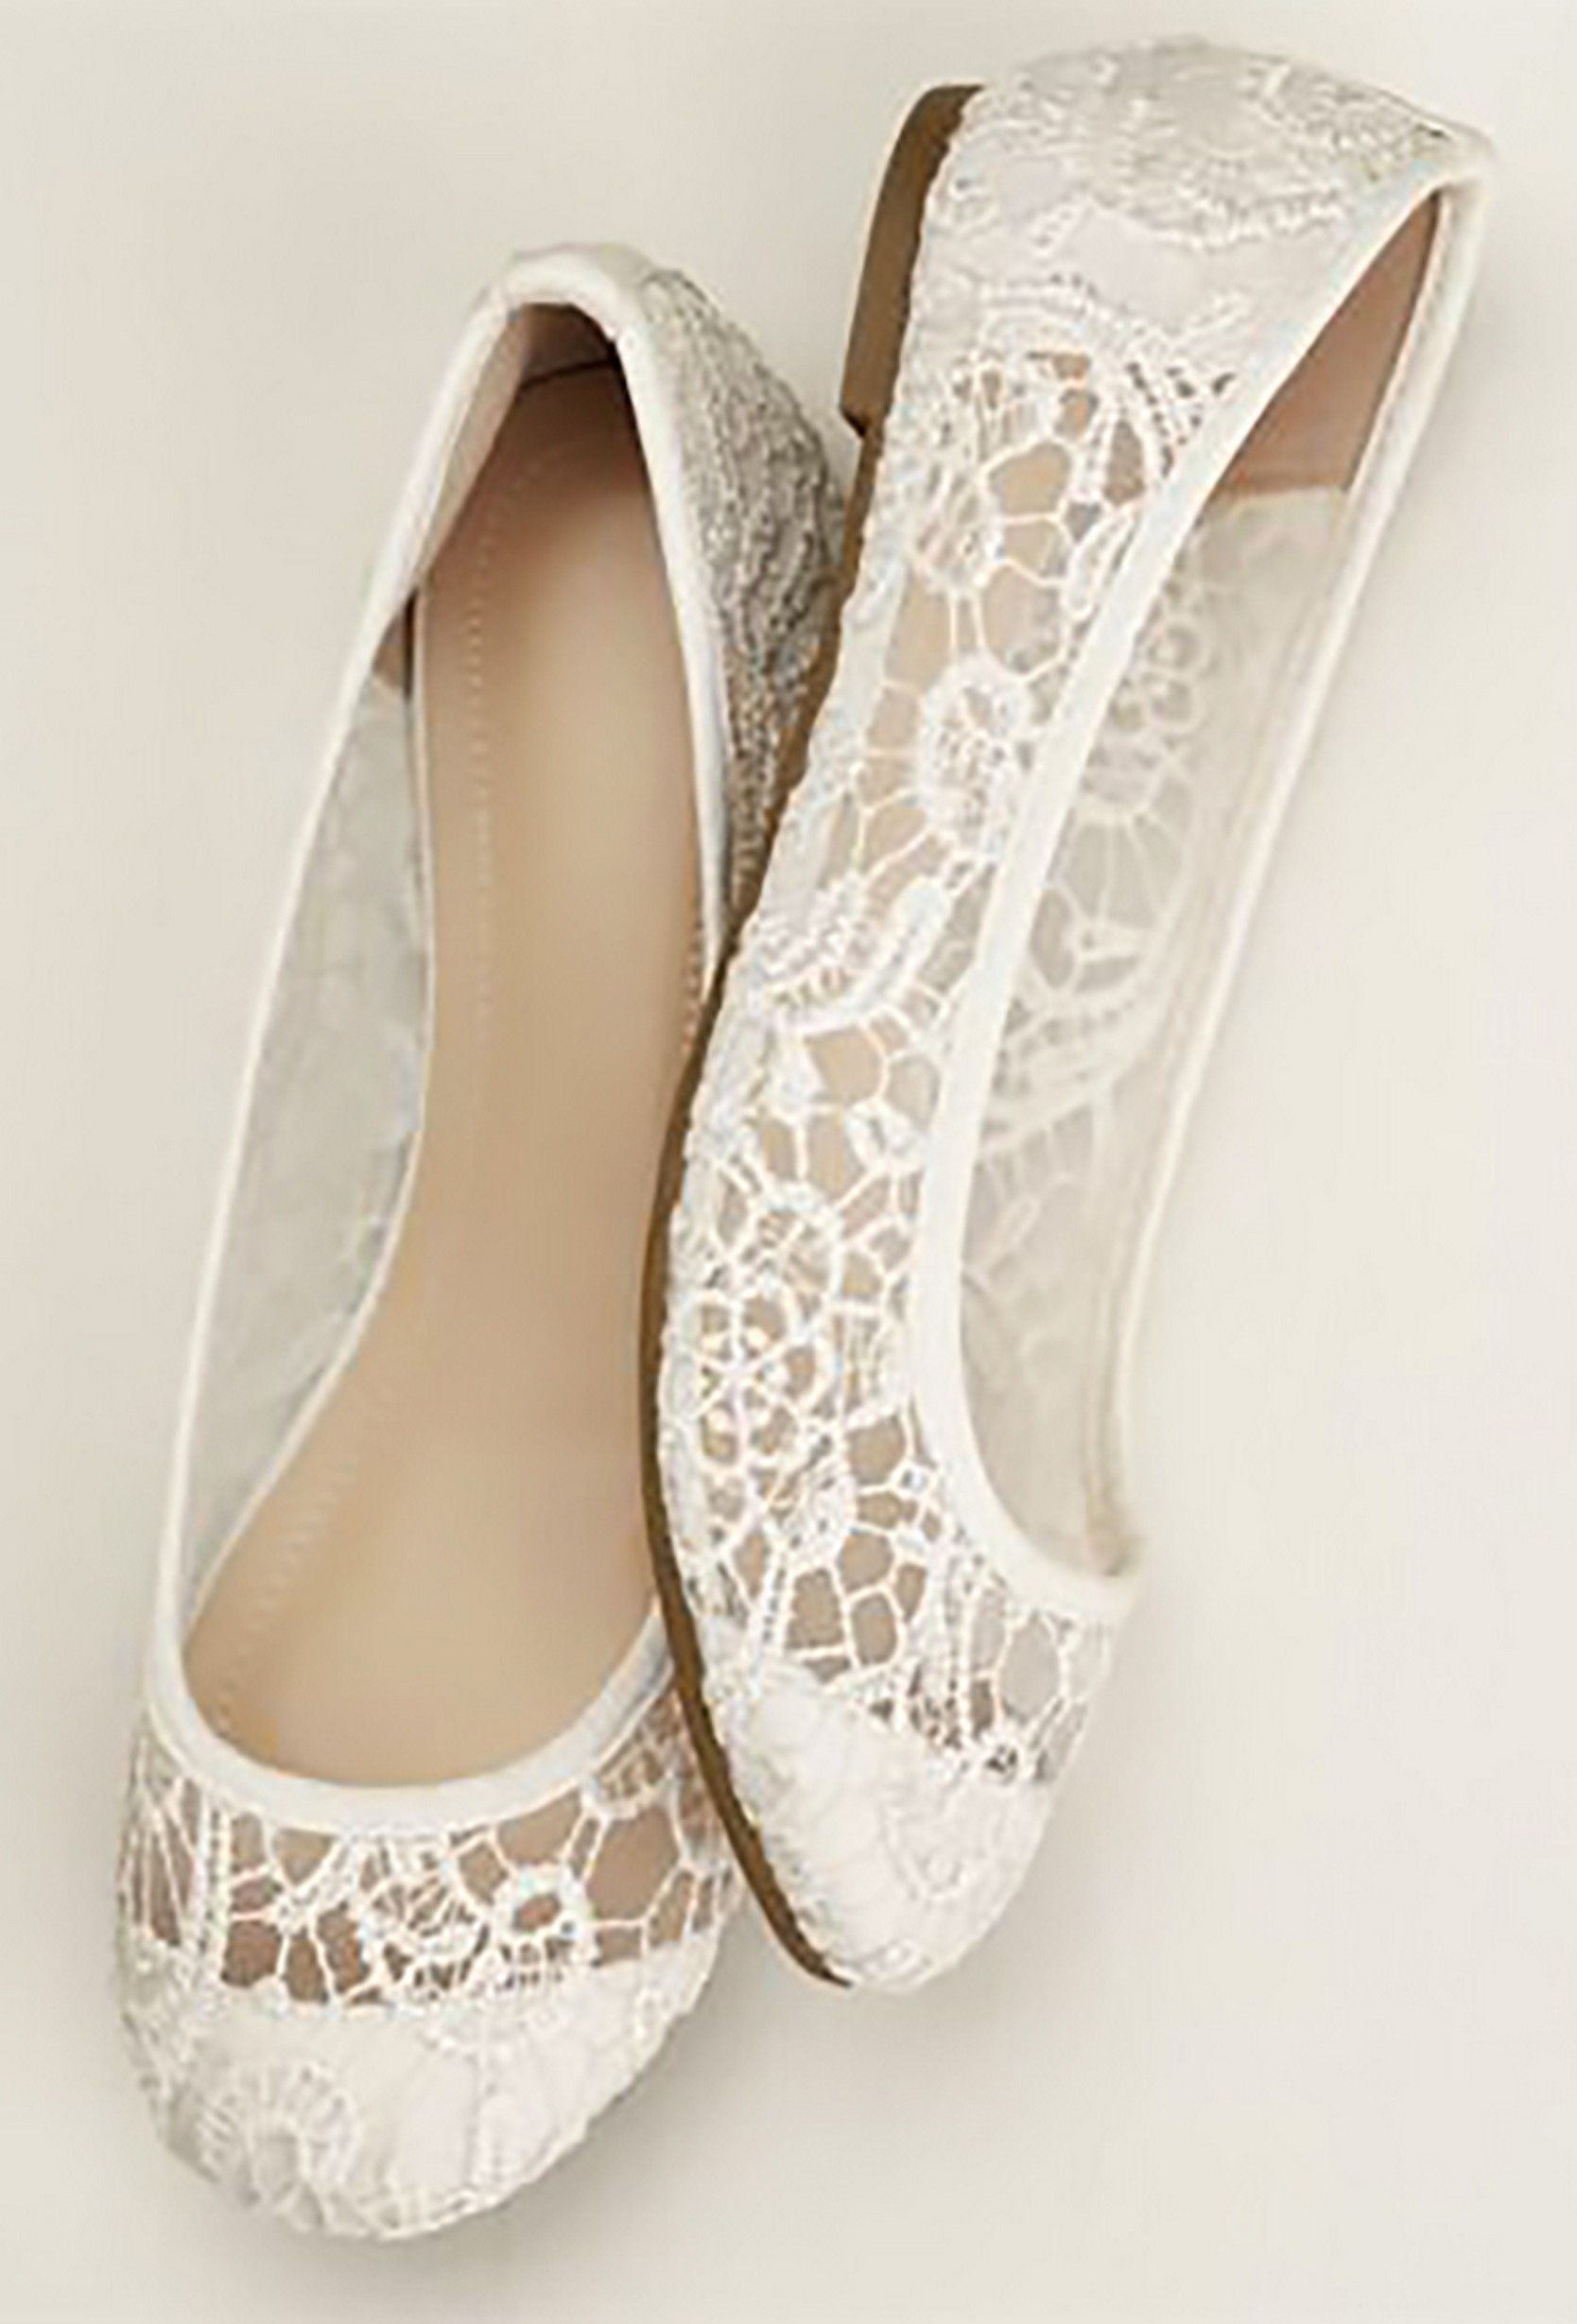 25 Most Comfortable Wedding Shoes You Can Actually Dance In Http Fashionetter 2017 03 22